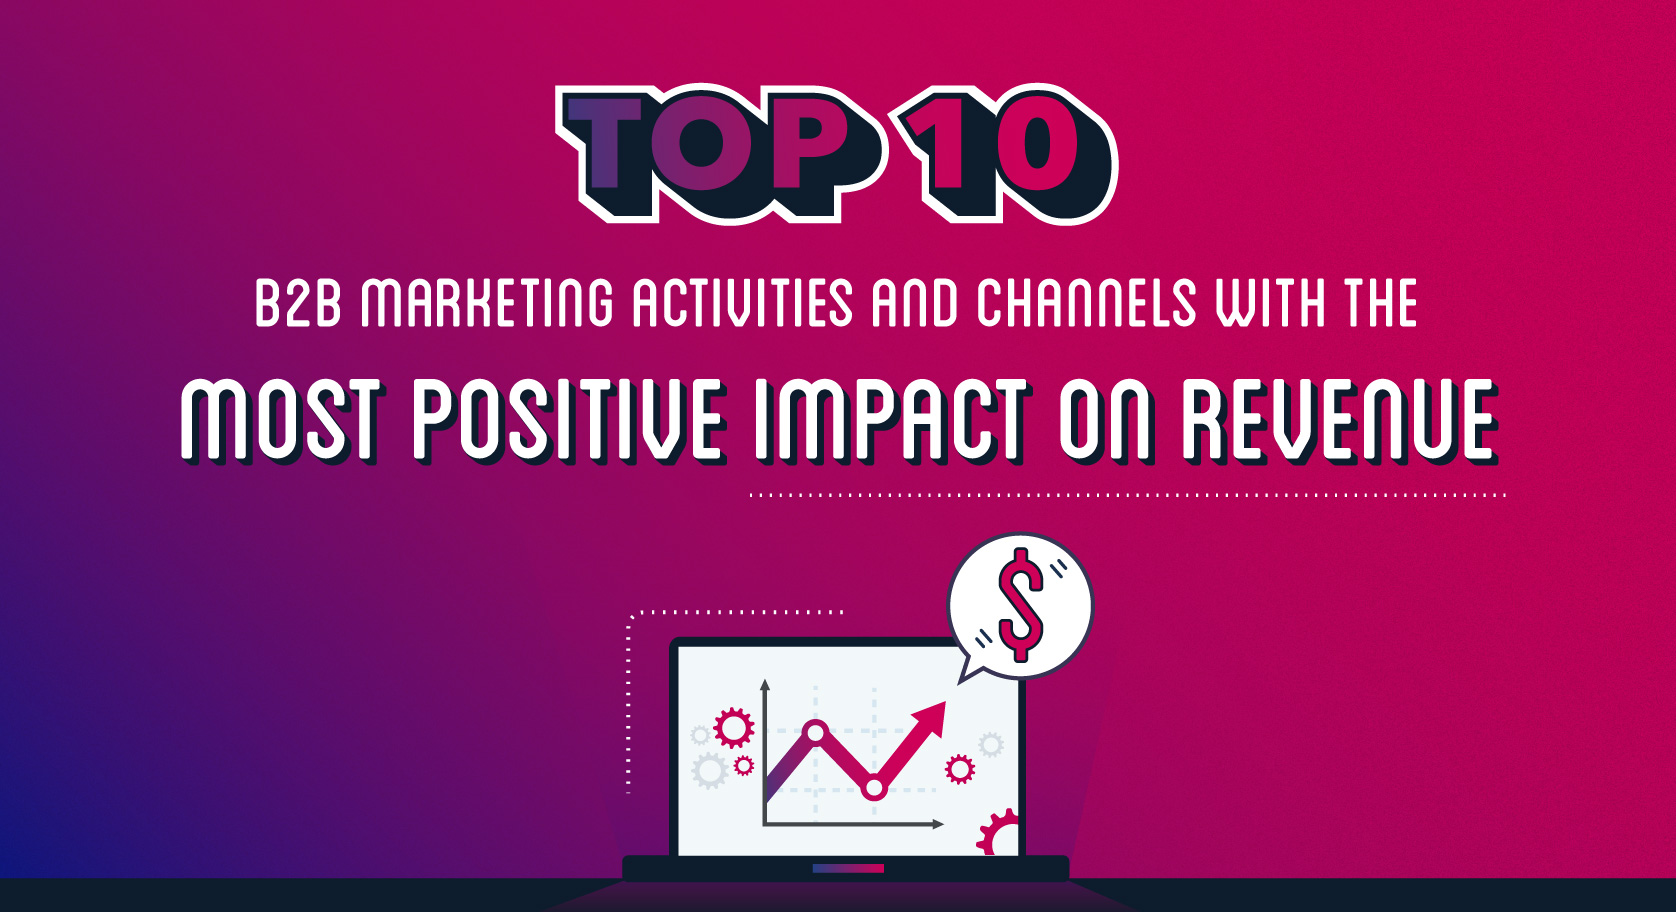 Infographic Top 10 Pipeline Marketing Activities | Uberflip